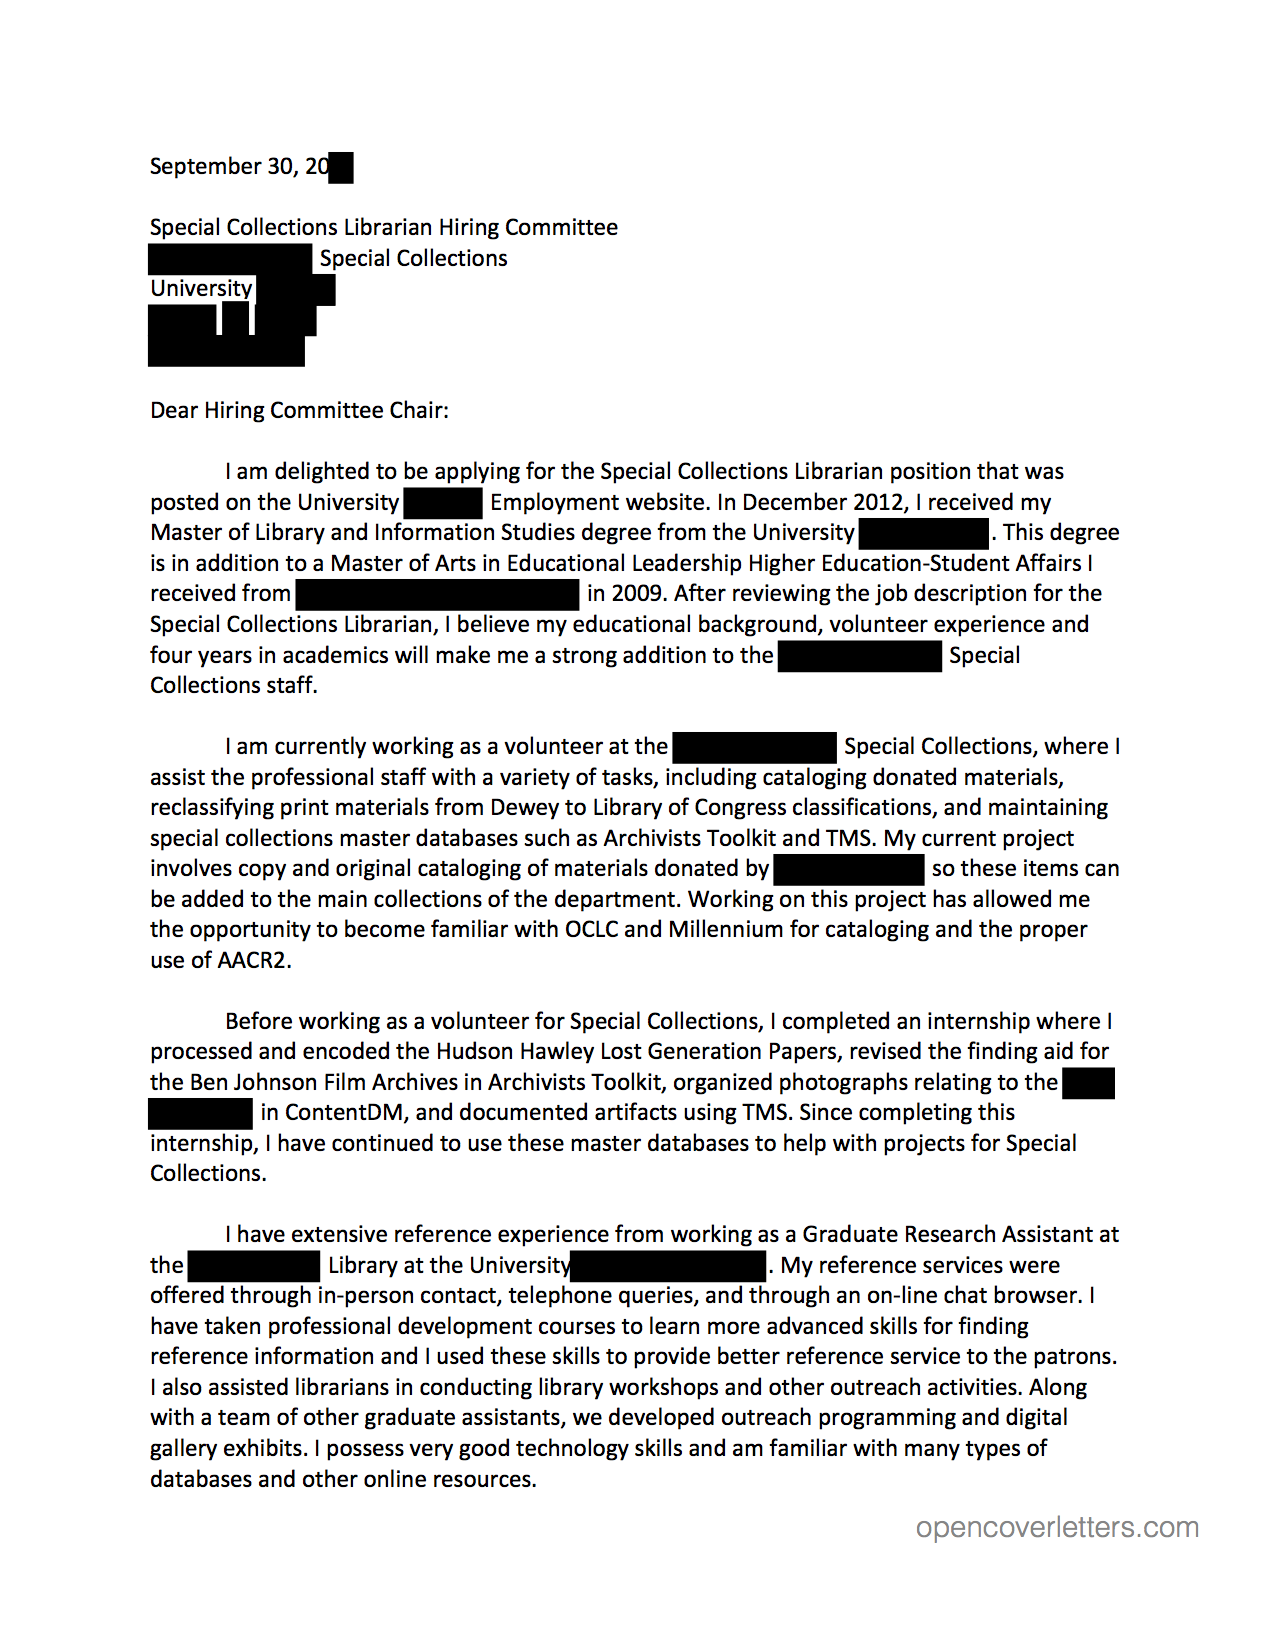 Cover Letter Opening Lines Examples Jake Bradley Associate Director Of  Michael Page Human Resources Shares The  Cover Letter Opening Sentence